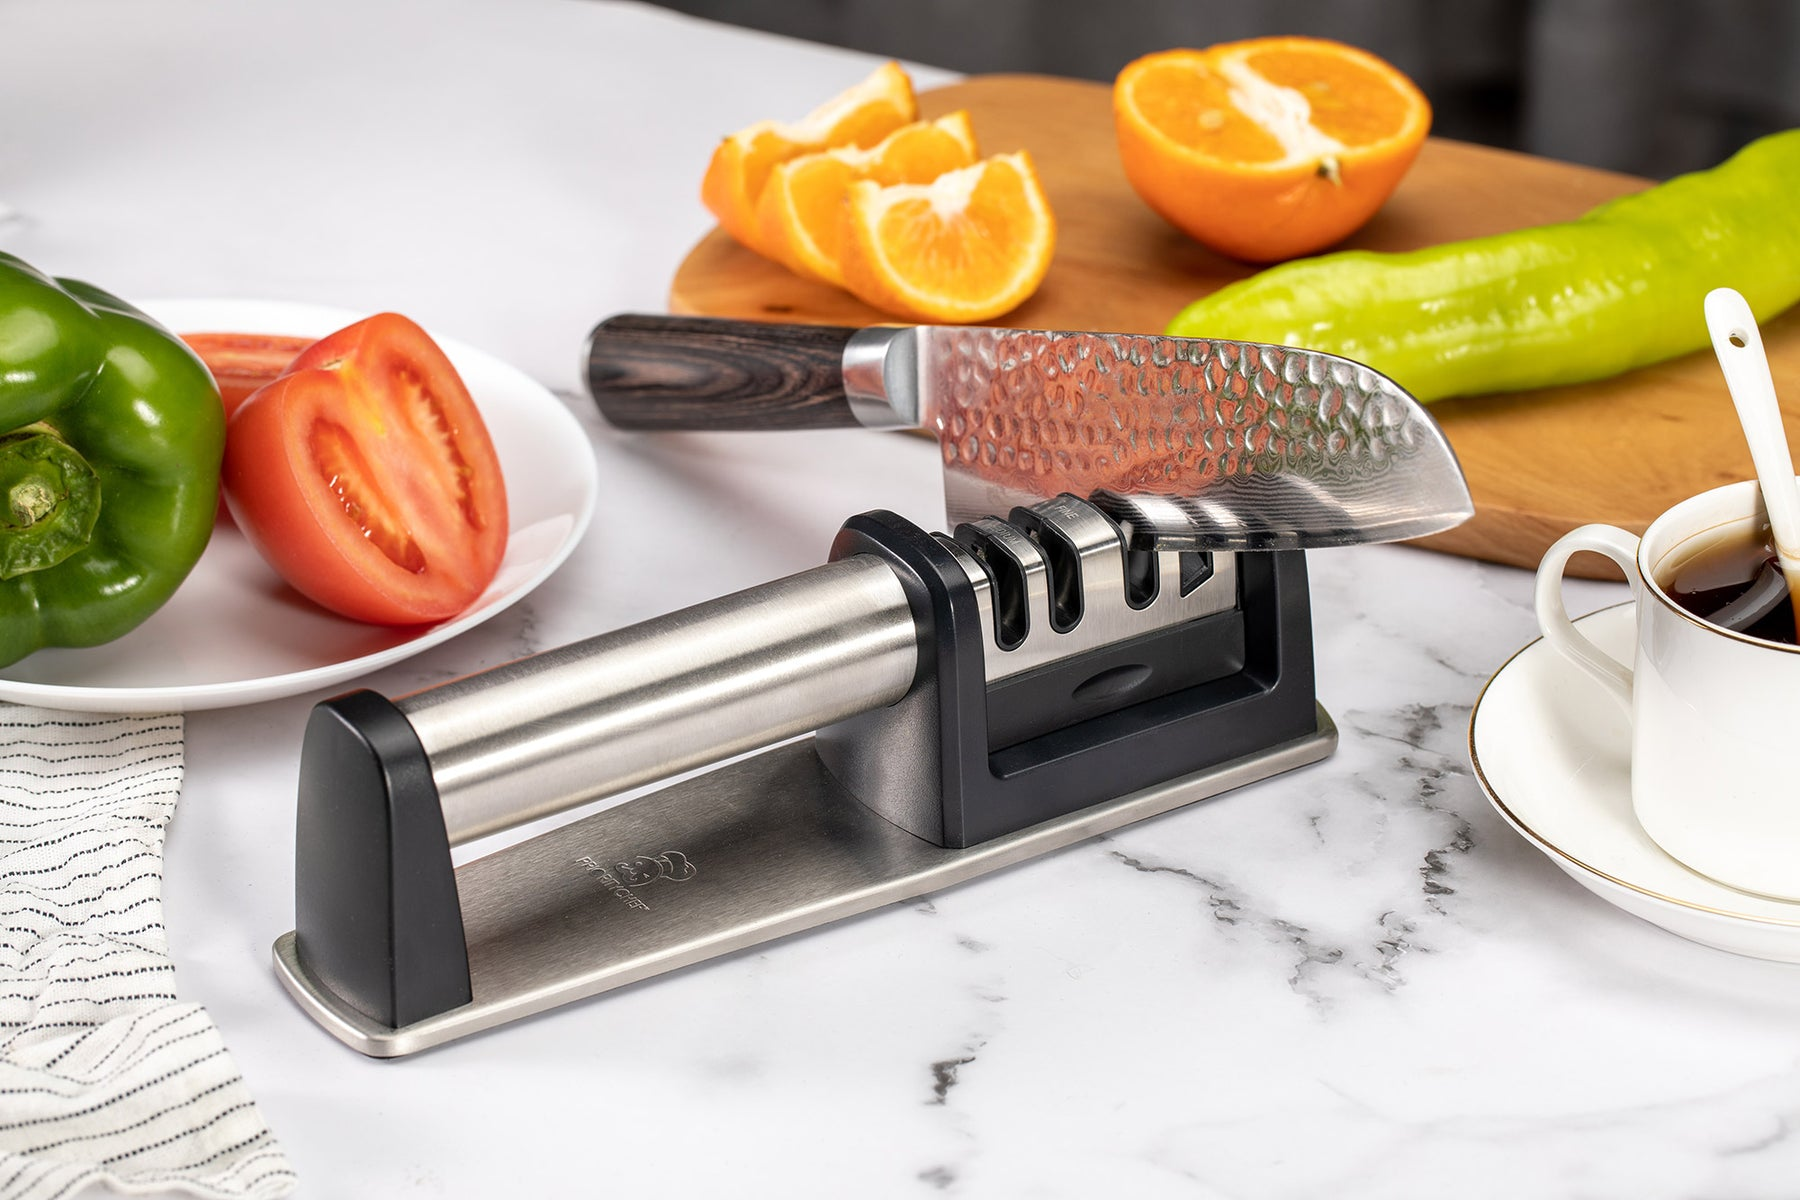 Diamond Knife & Scissors Sharpener in Kitchen featured image